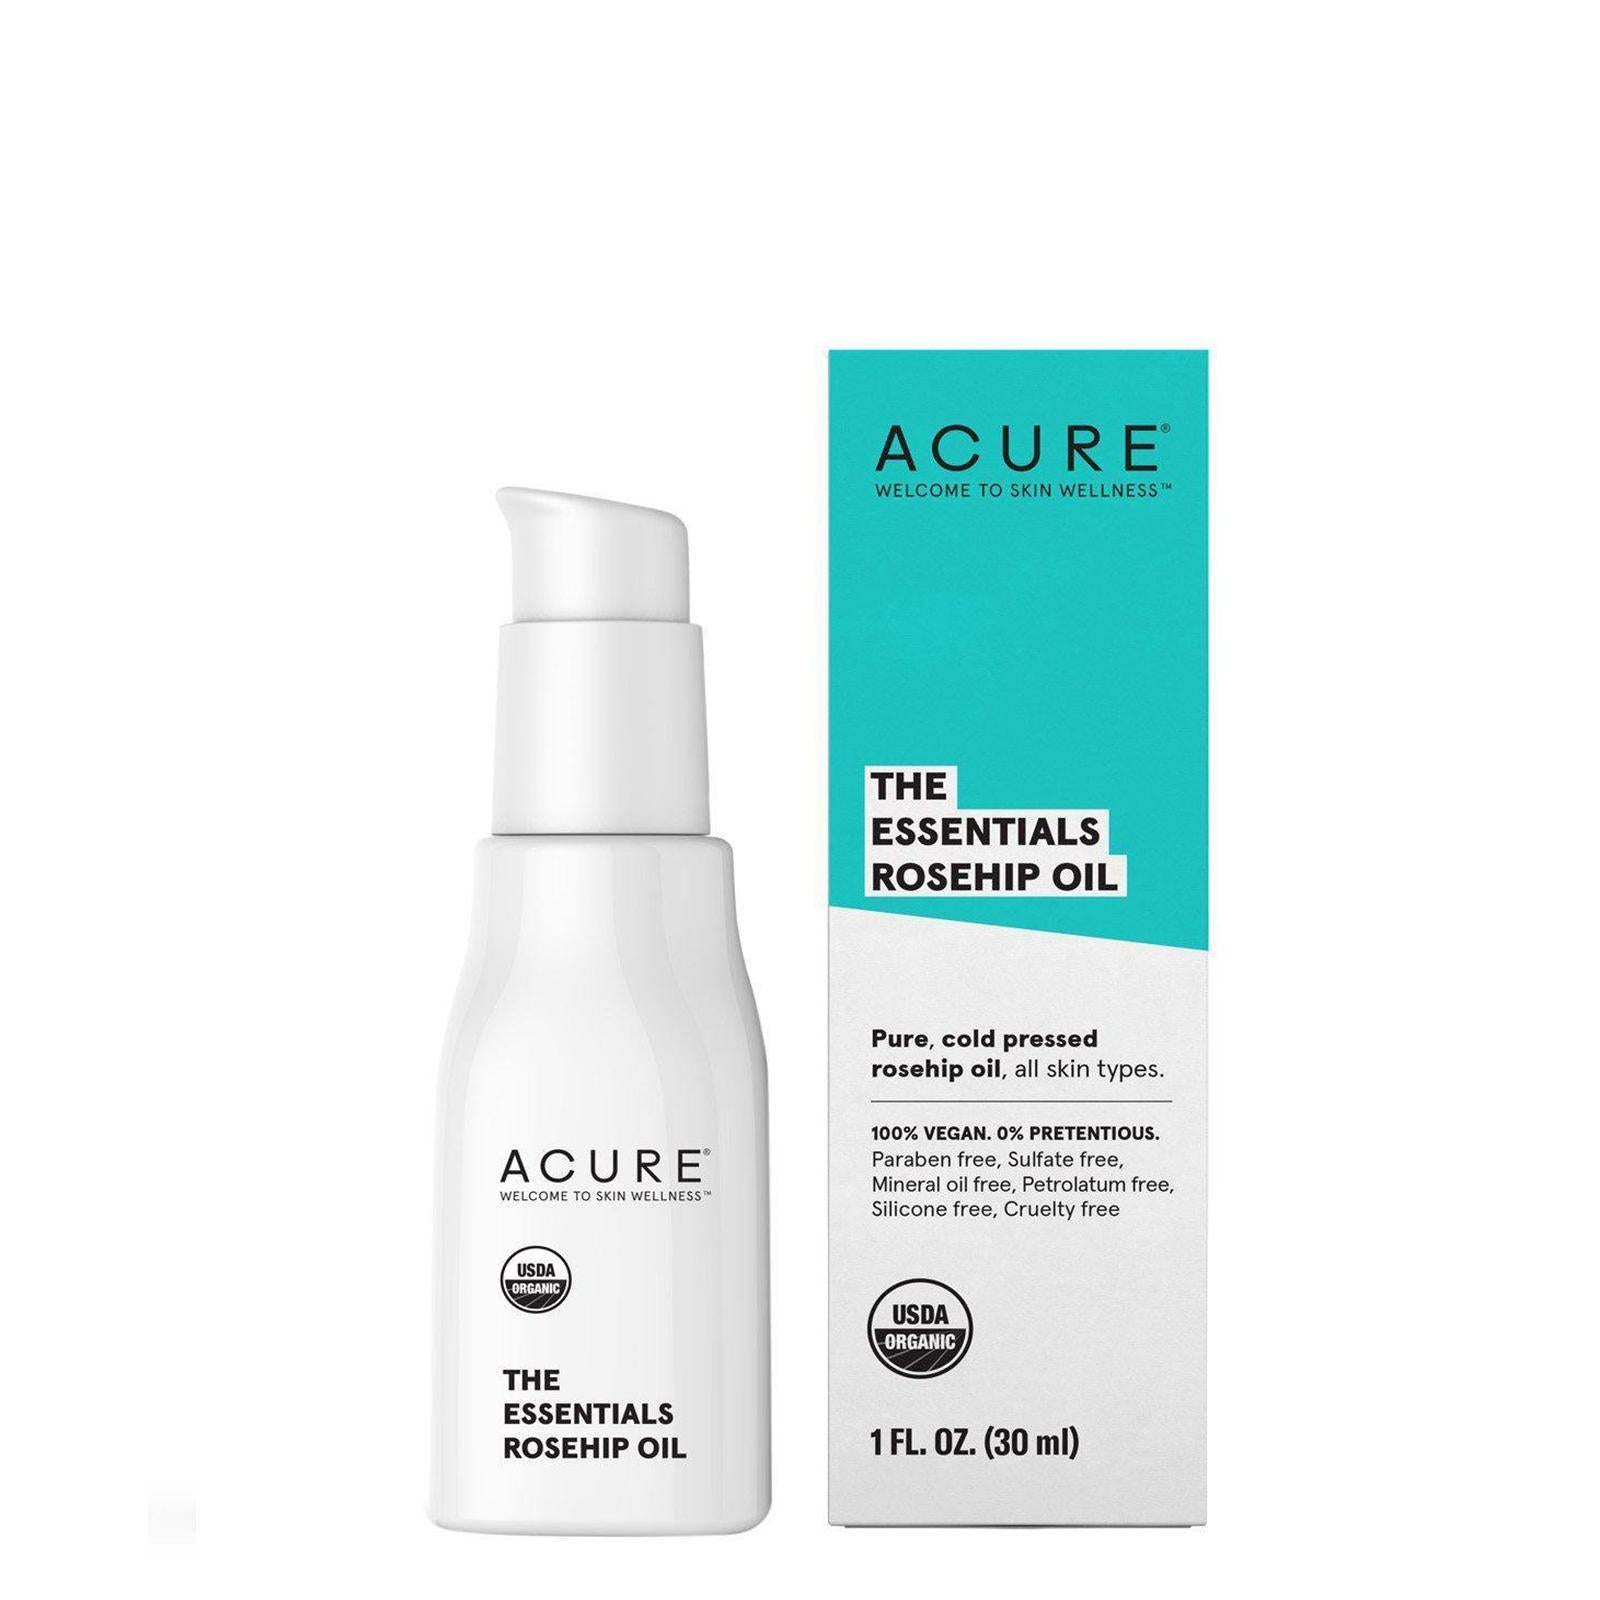 Acure, The Essentials - Rosehip Oil - All Skin Types, 1fl.oz/30ml